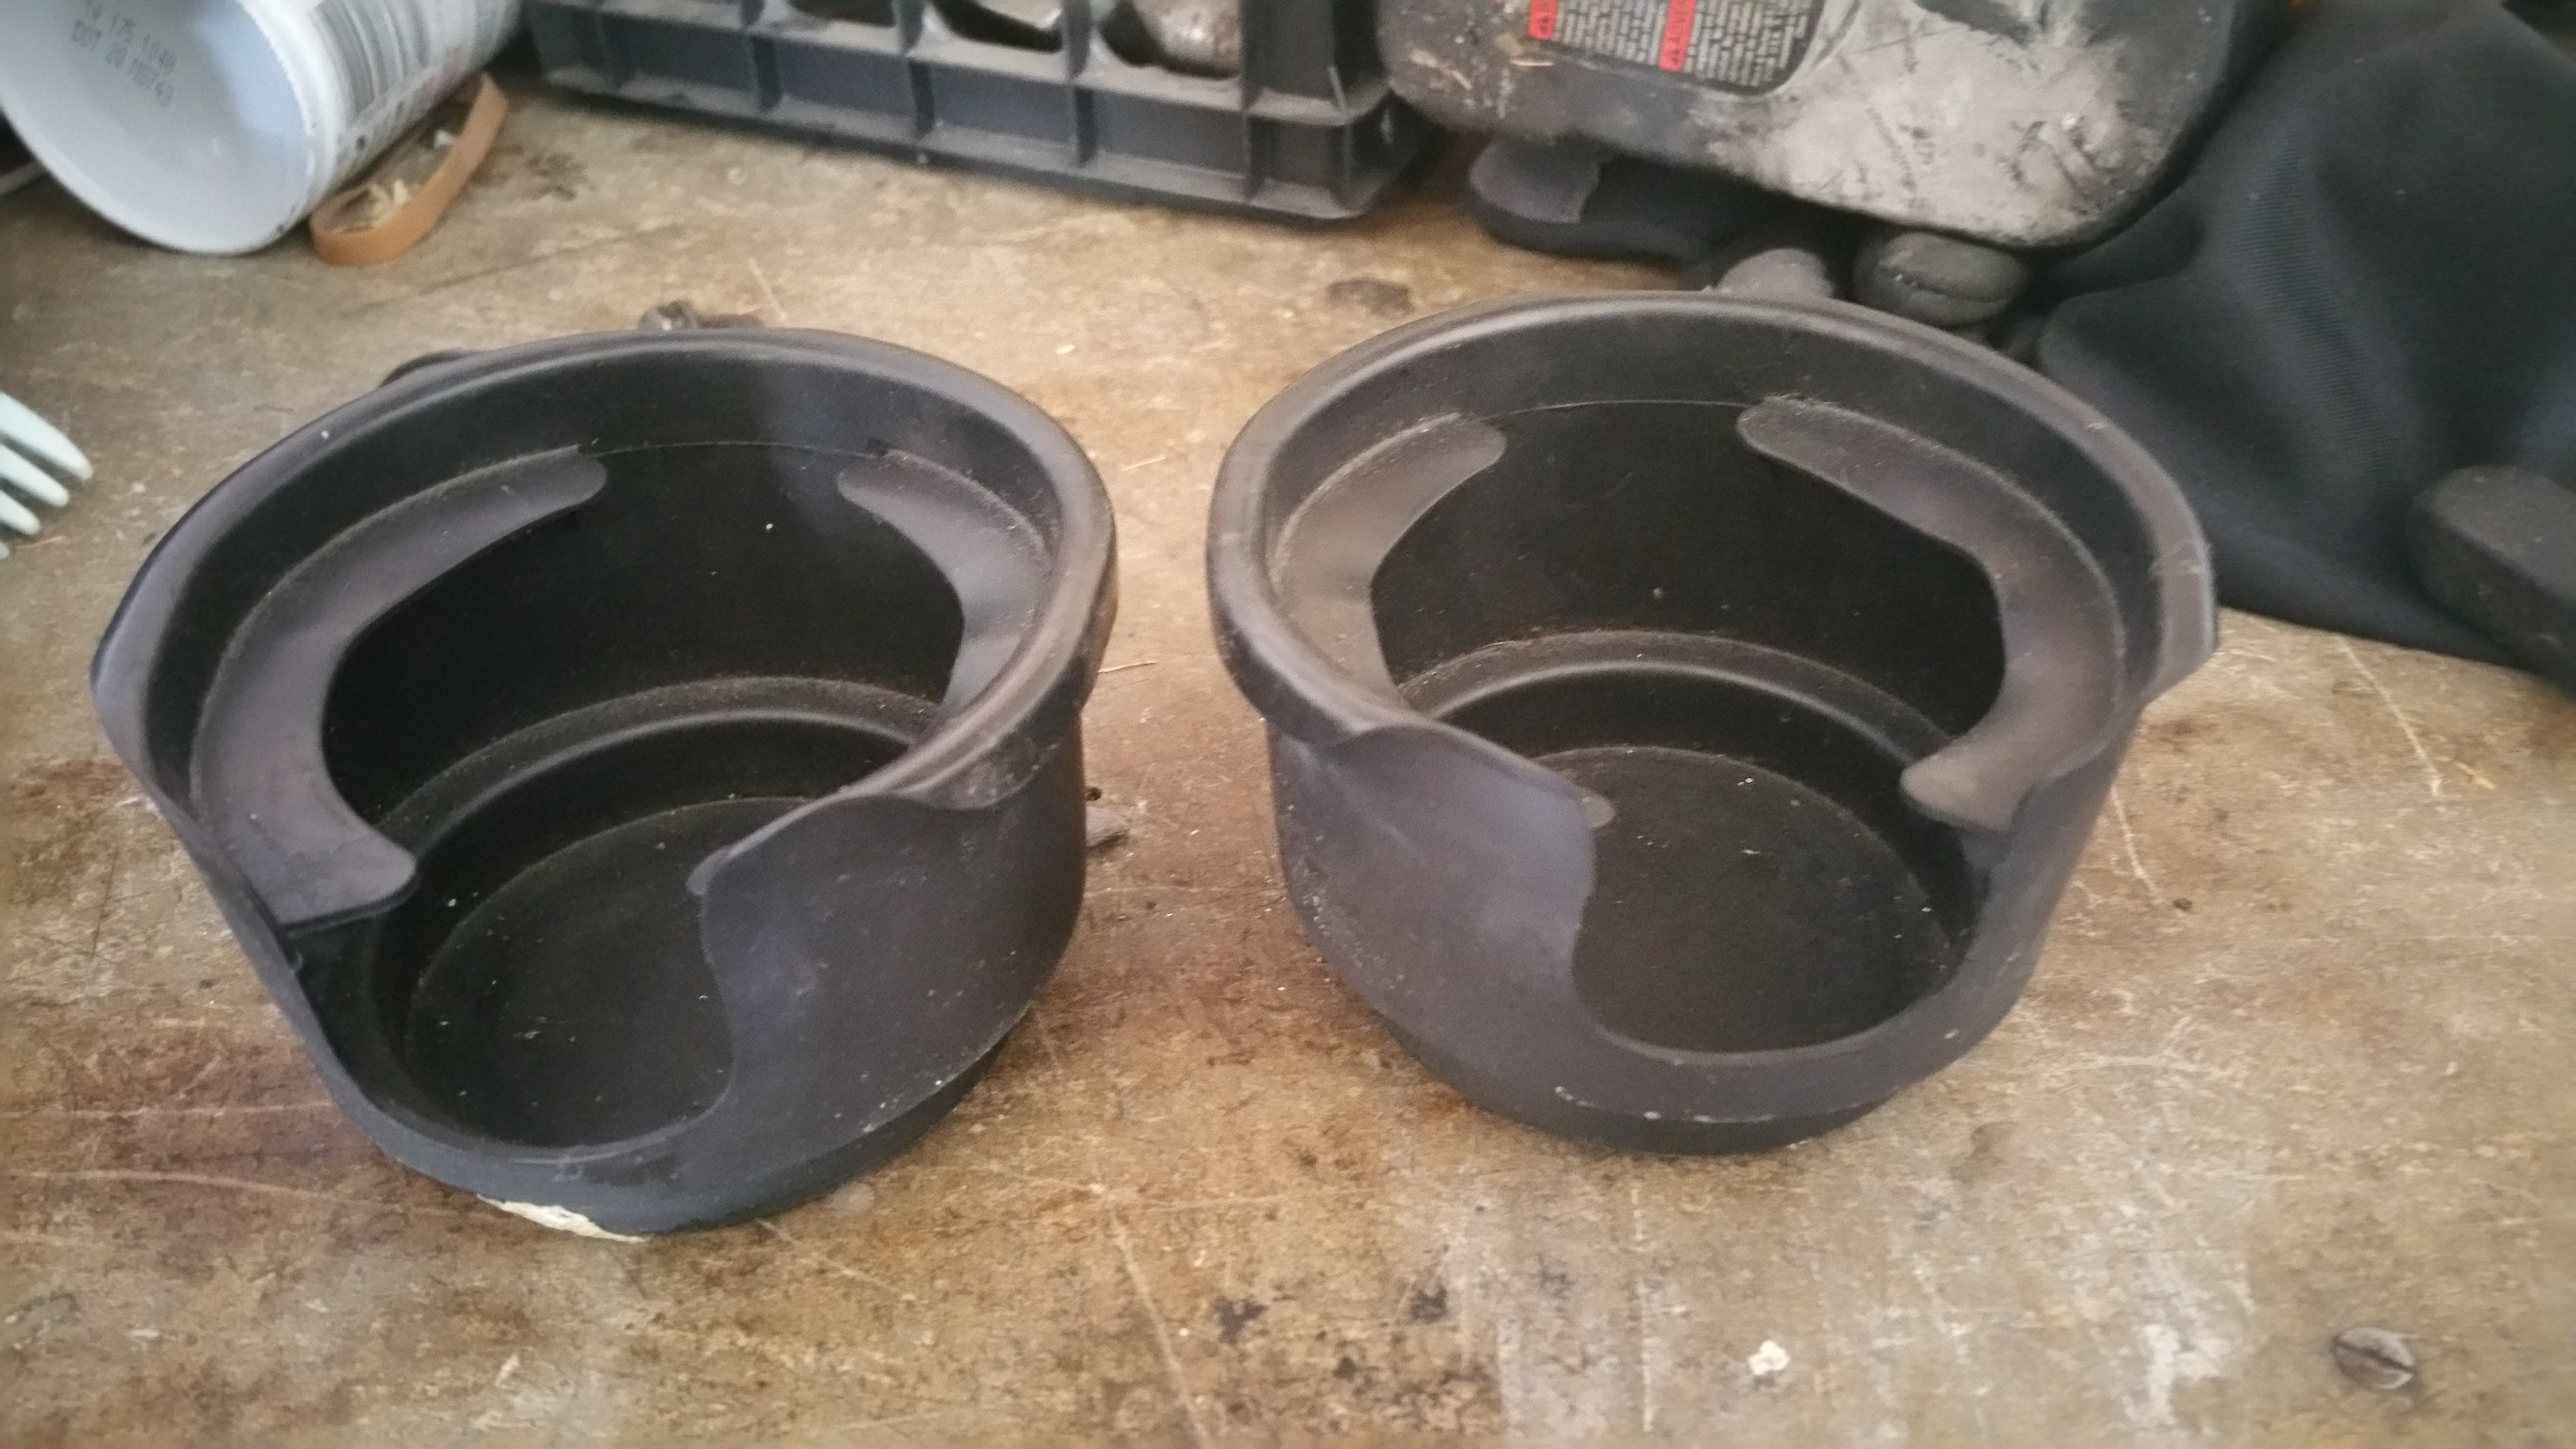 Rubber oem cup insert bungy cond...